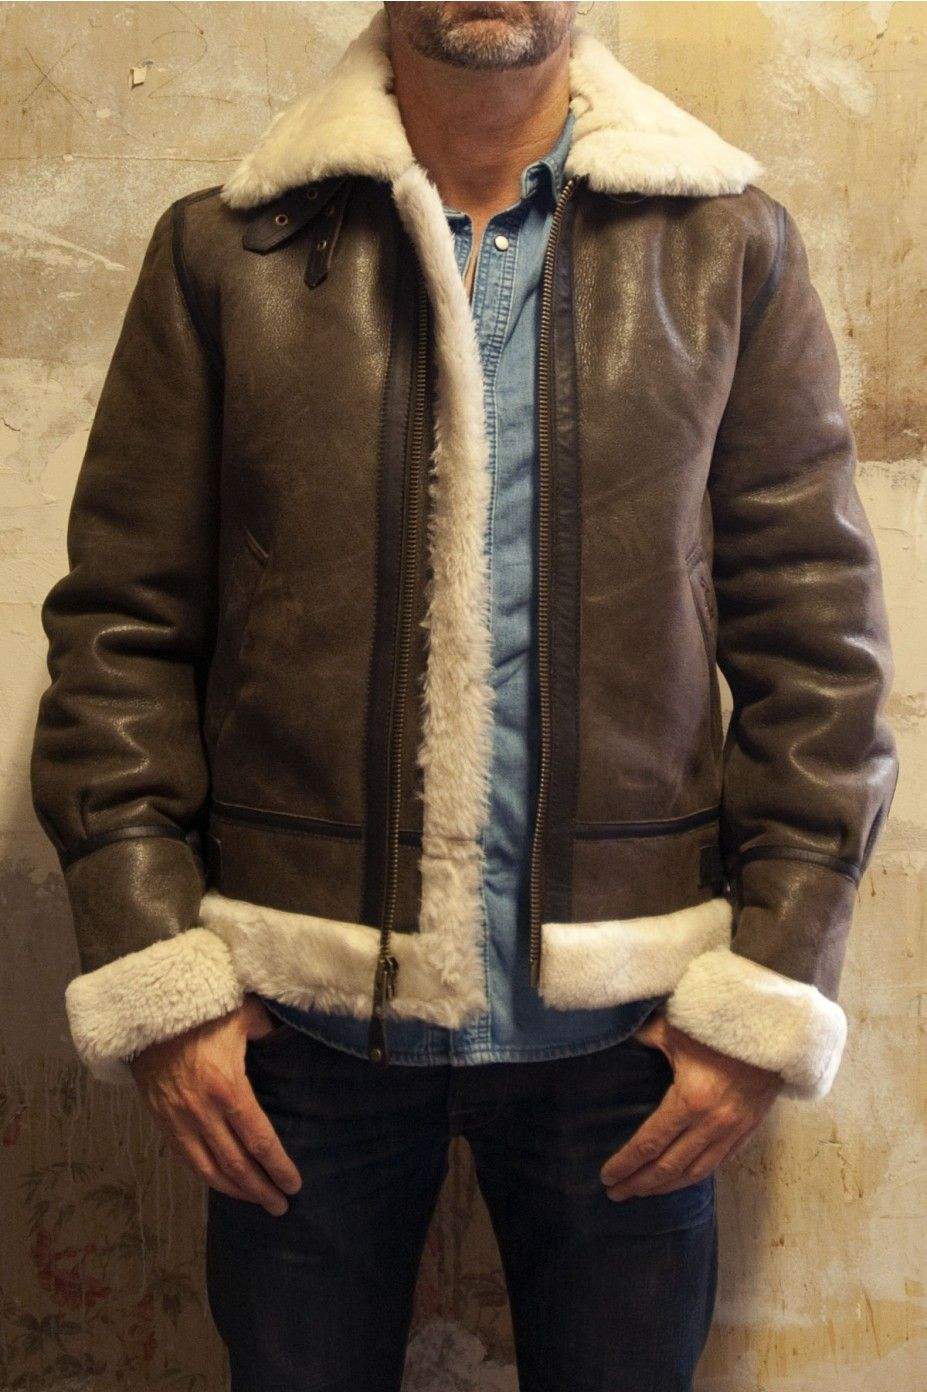 Schott Brown Pilot Jacket mens fashion mens coats- a bomber jacket. My  friend used to have one. Looked good on him, but you know what...no waist  and it ... 3a8aa6e7e07